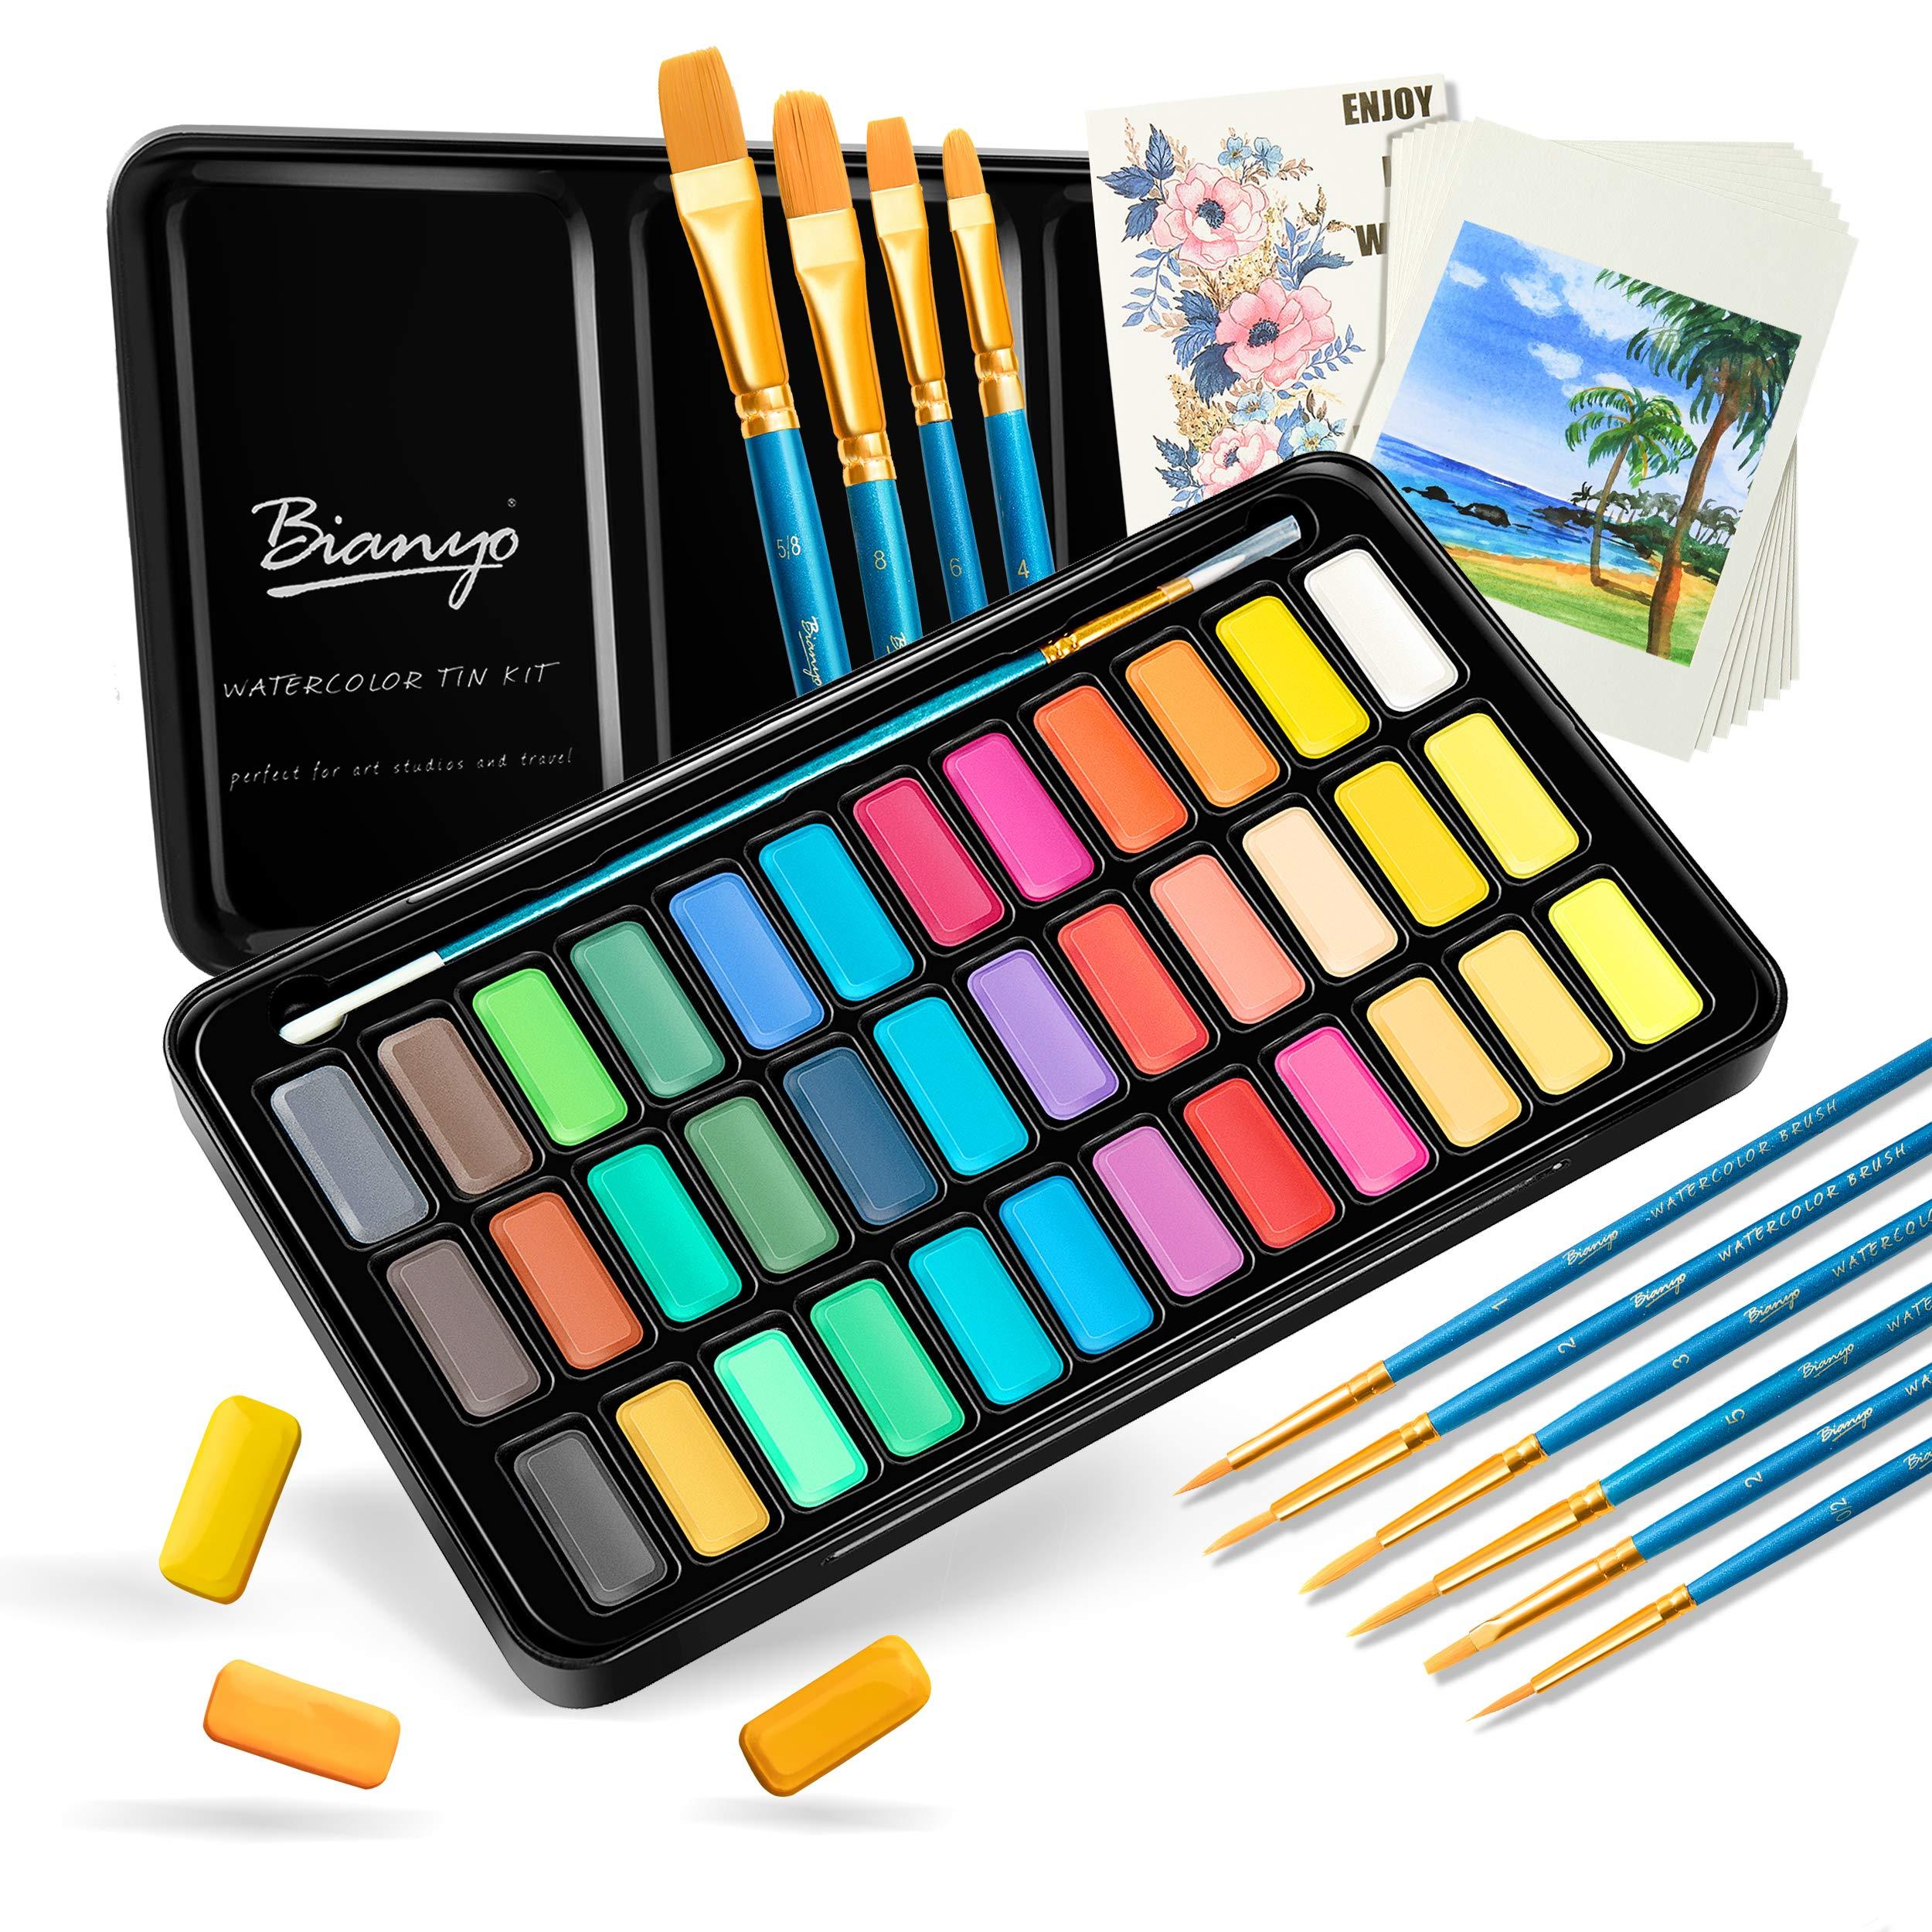 36 Colors Watercolor Paint Set with 10+1 pcs Watercolor Brushes 8 pcs